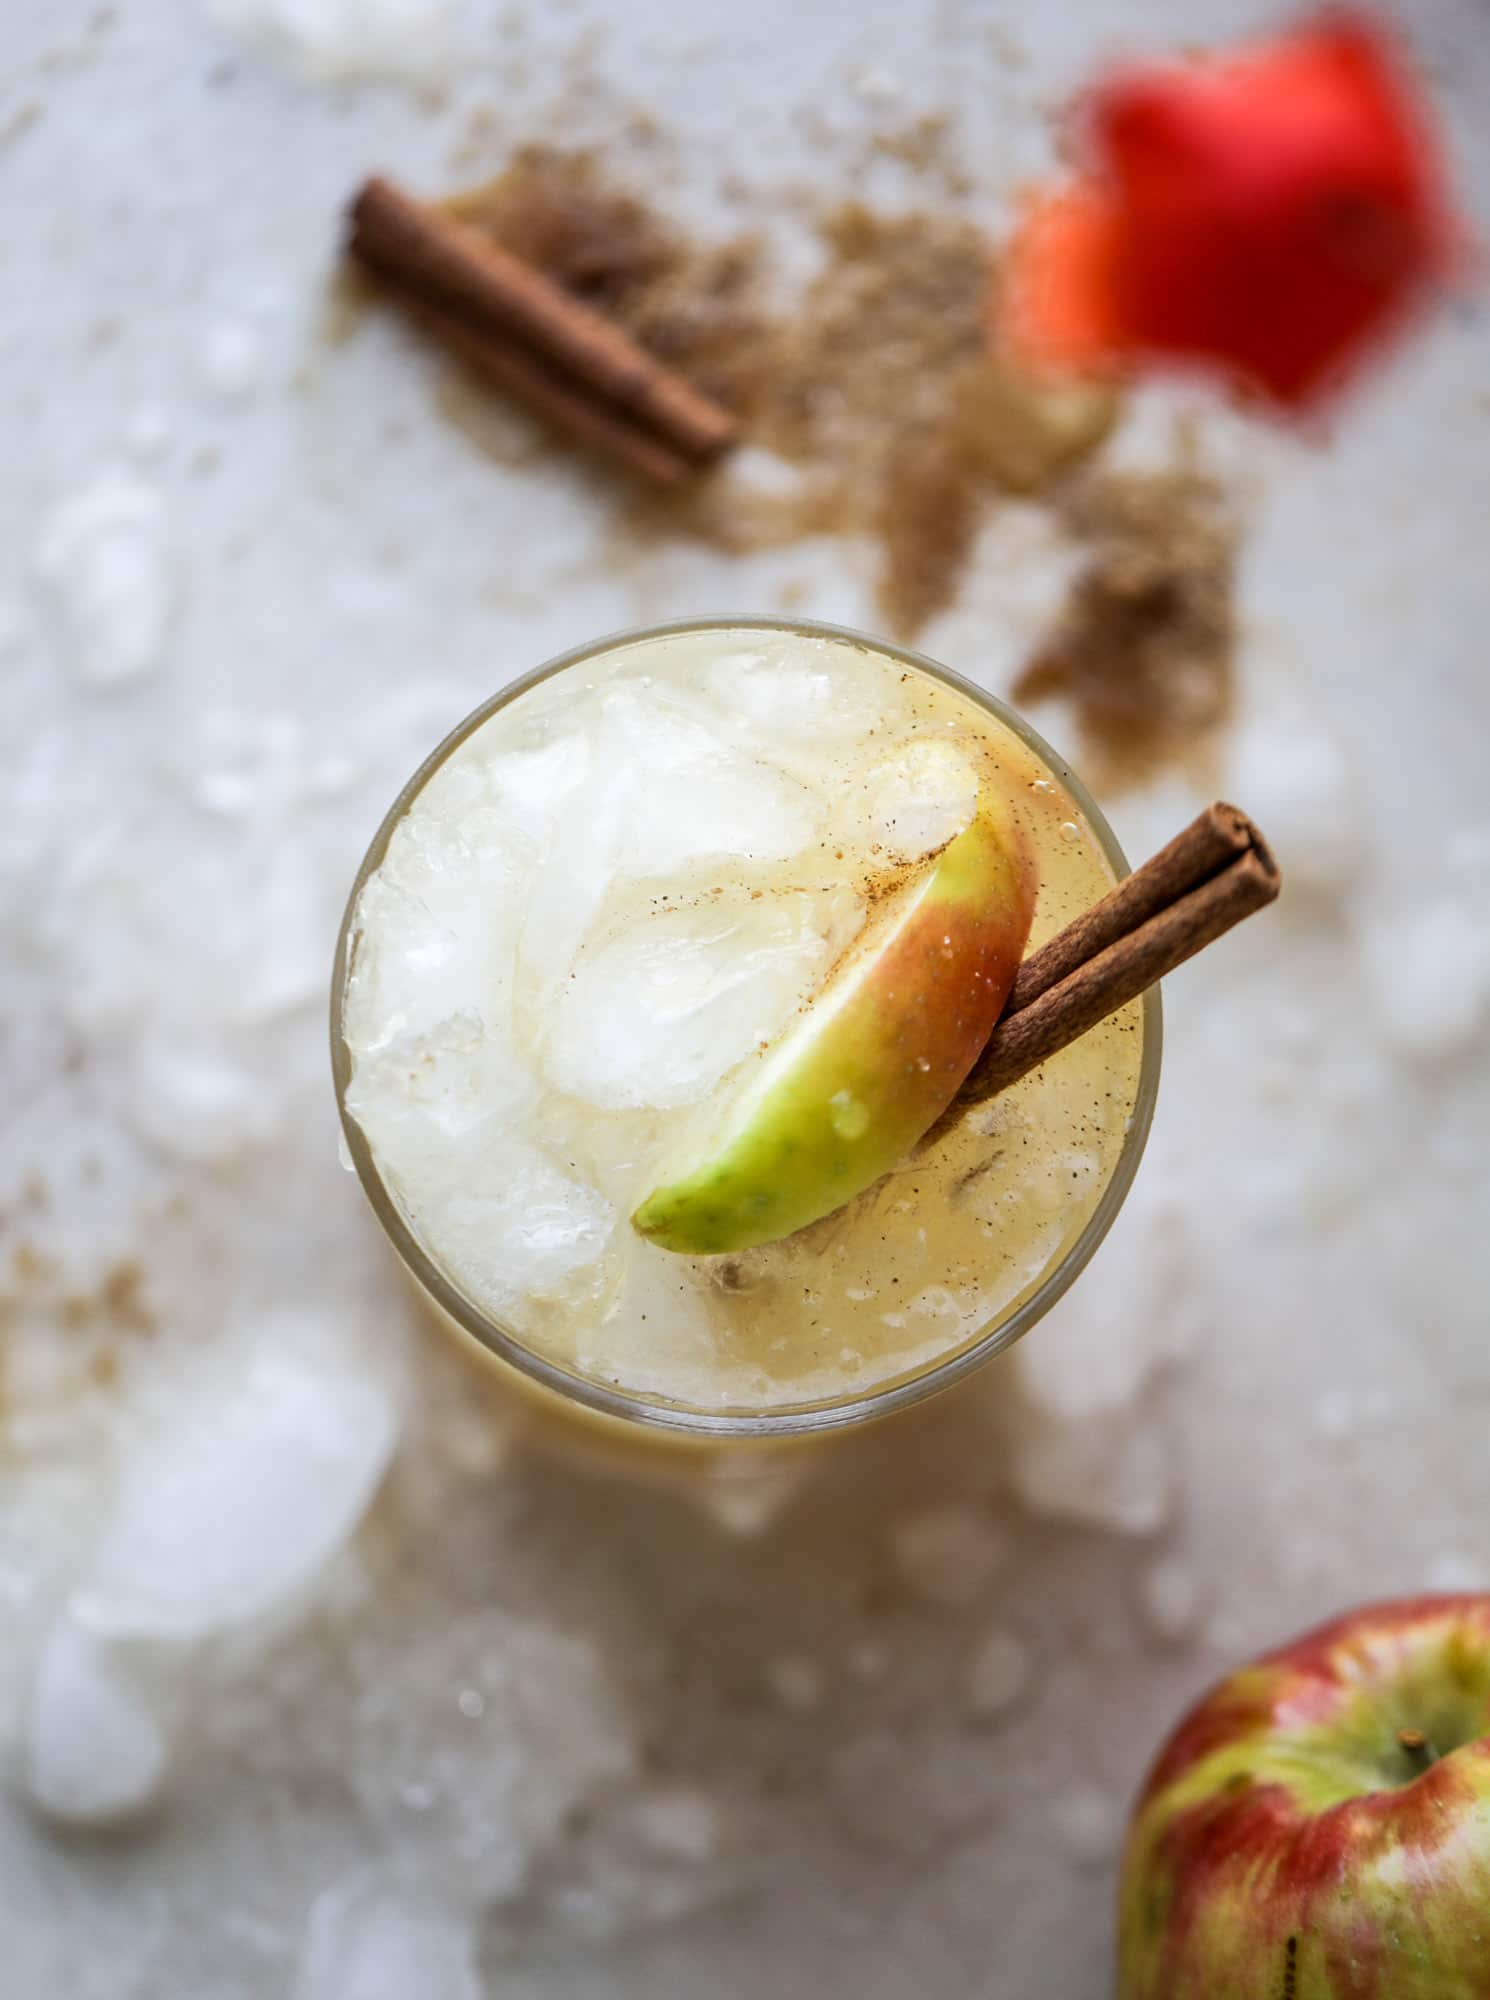 This honeycrisp apple cocktail is so perfect for fall! Fresh honeycrisp apple juice, honeycrisp apple syrup, vodka and ginger beer come together to create a refreshing, bubbly drink for autumn. Finished with a cinnamon sugar rim - YUM. I howsweeteats.com #honeycrisp #apple #cocktail #fall #drinks #vodka